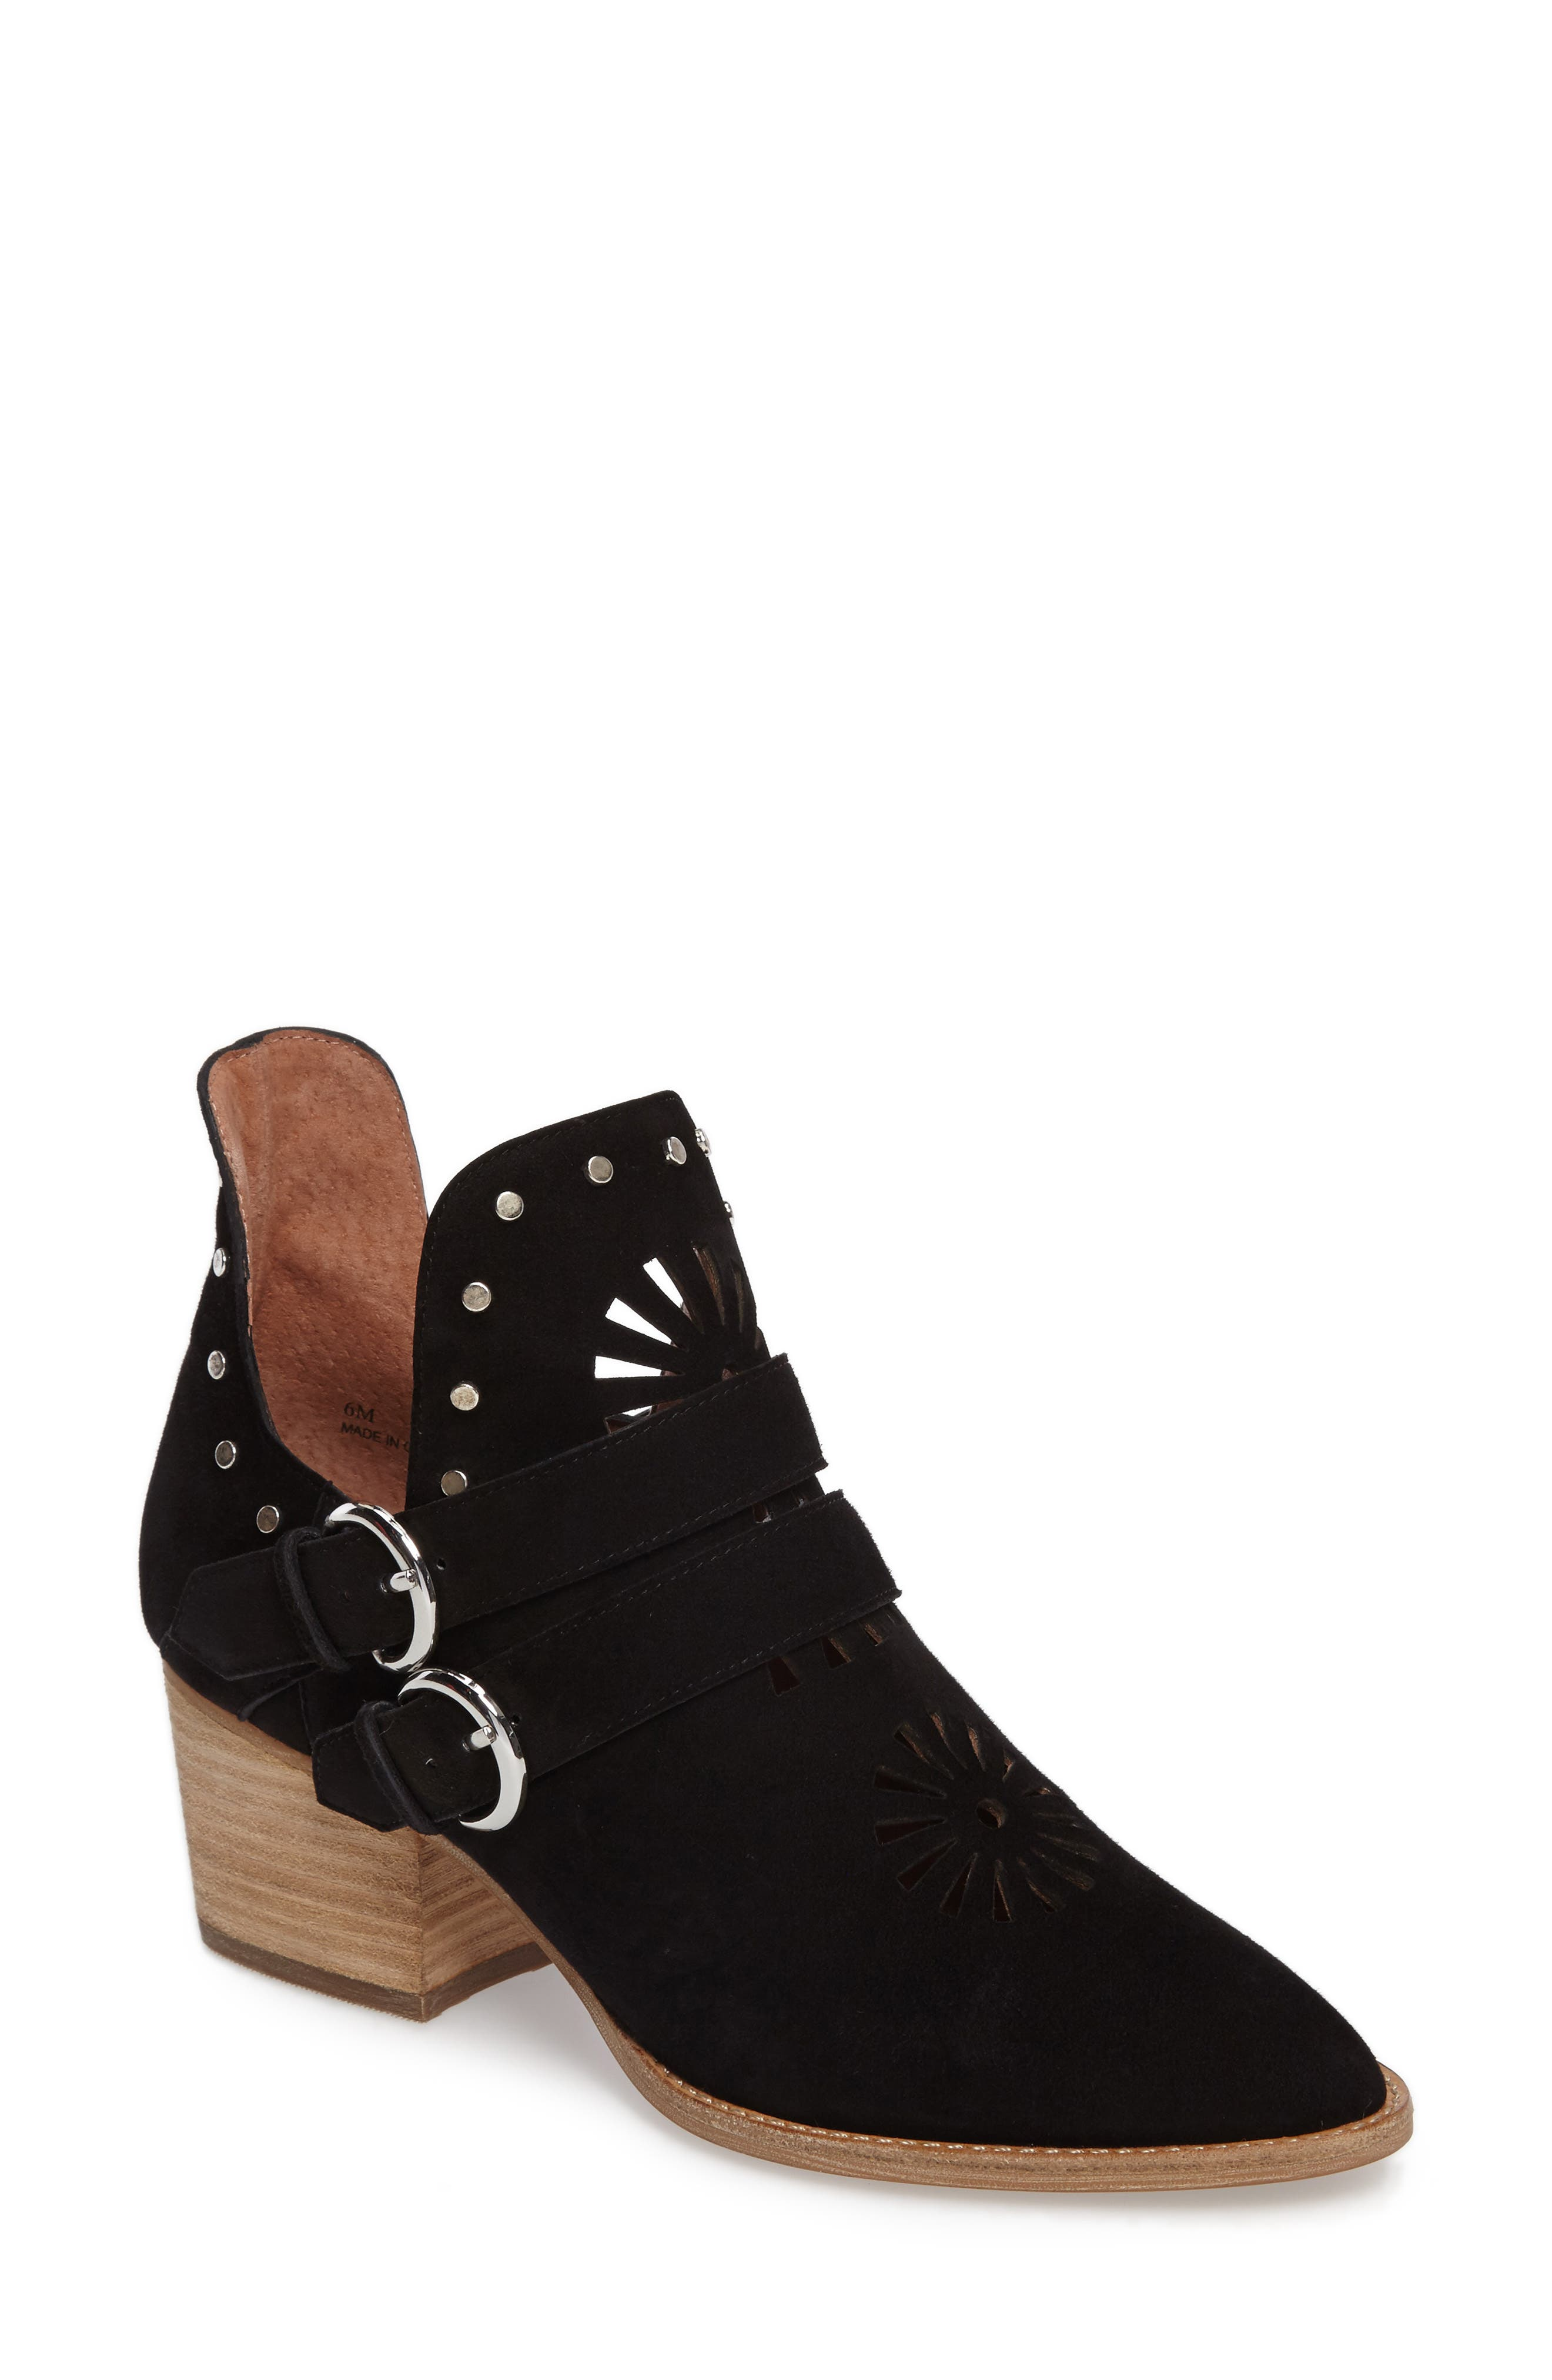 Alternate Image 1 Selected - Linea Paolo West Bootie (Women)